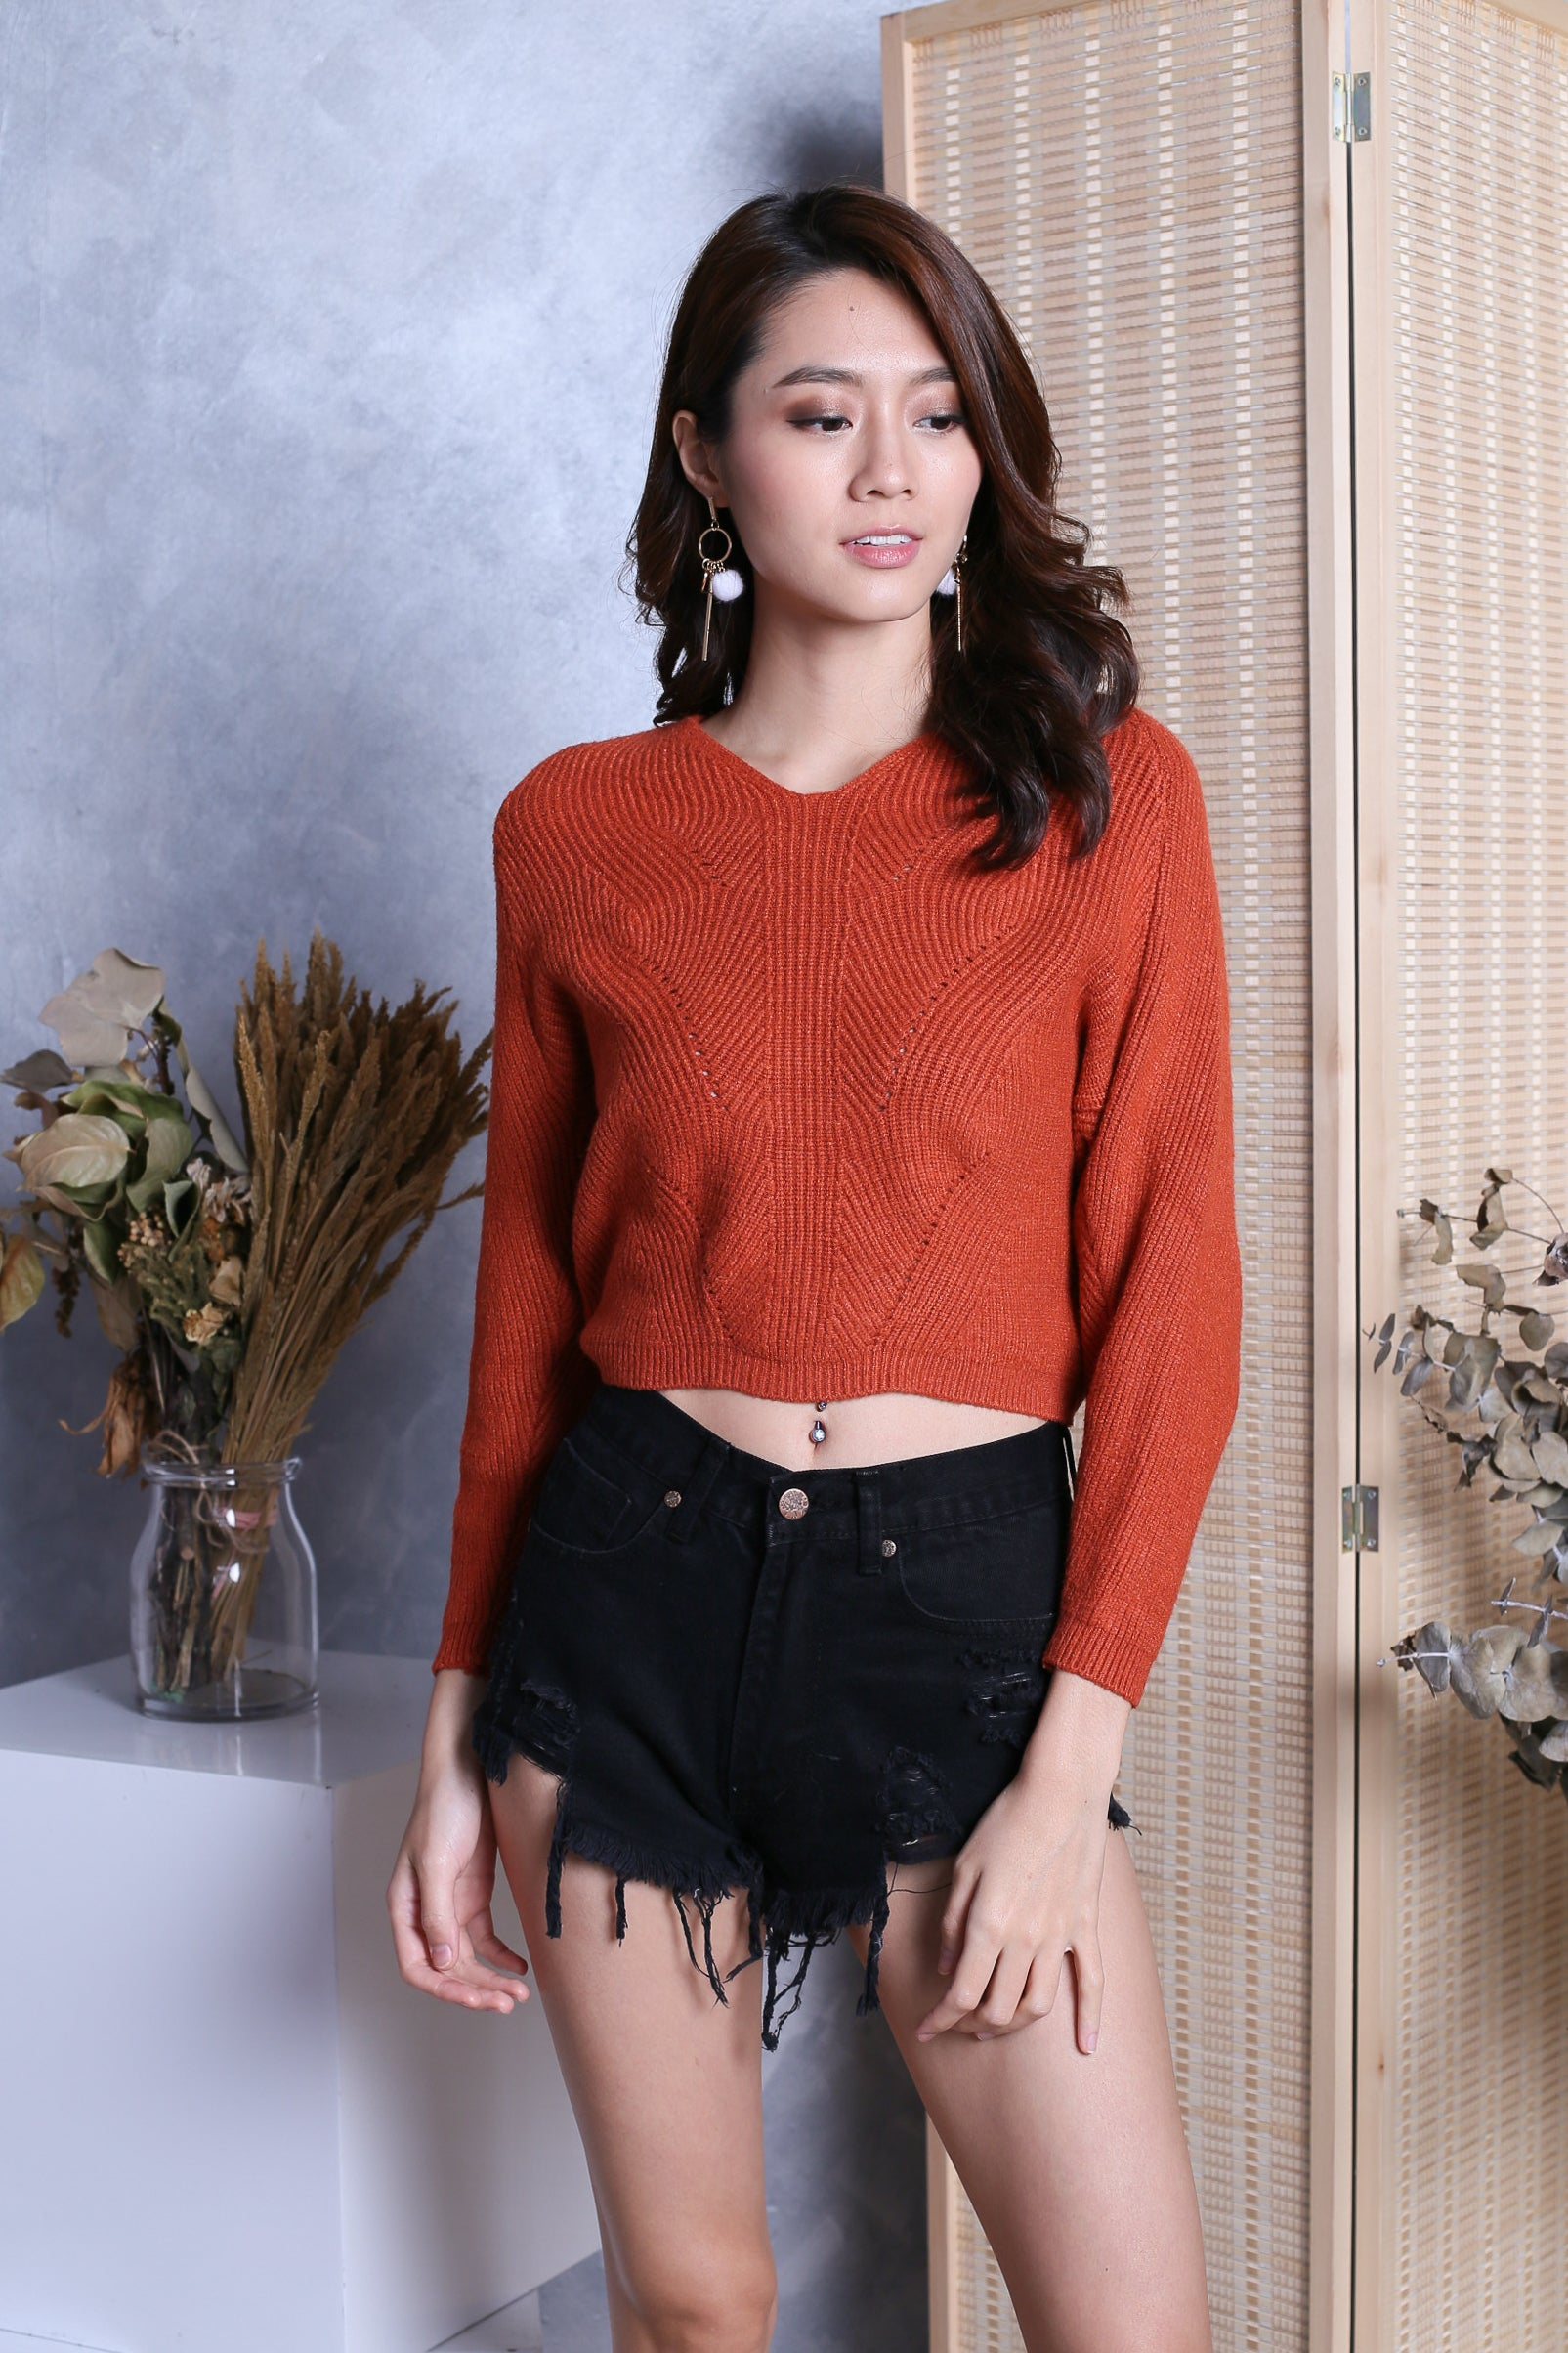 KYLIE SOFT KNIT TOP IN TANGERINE